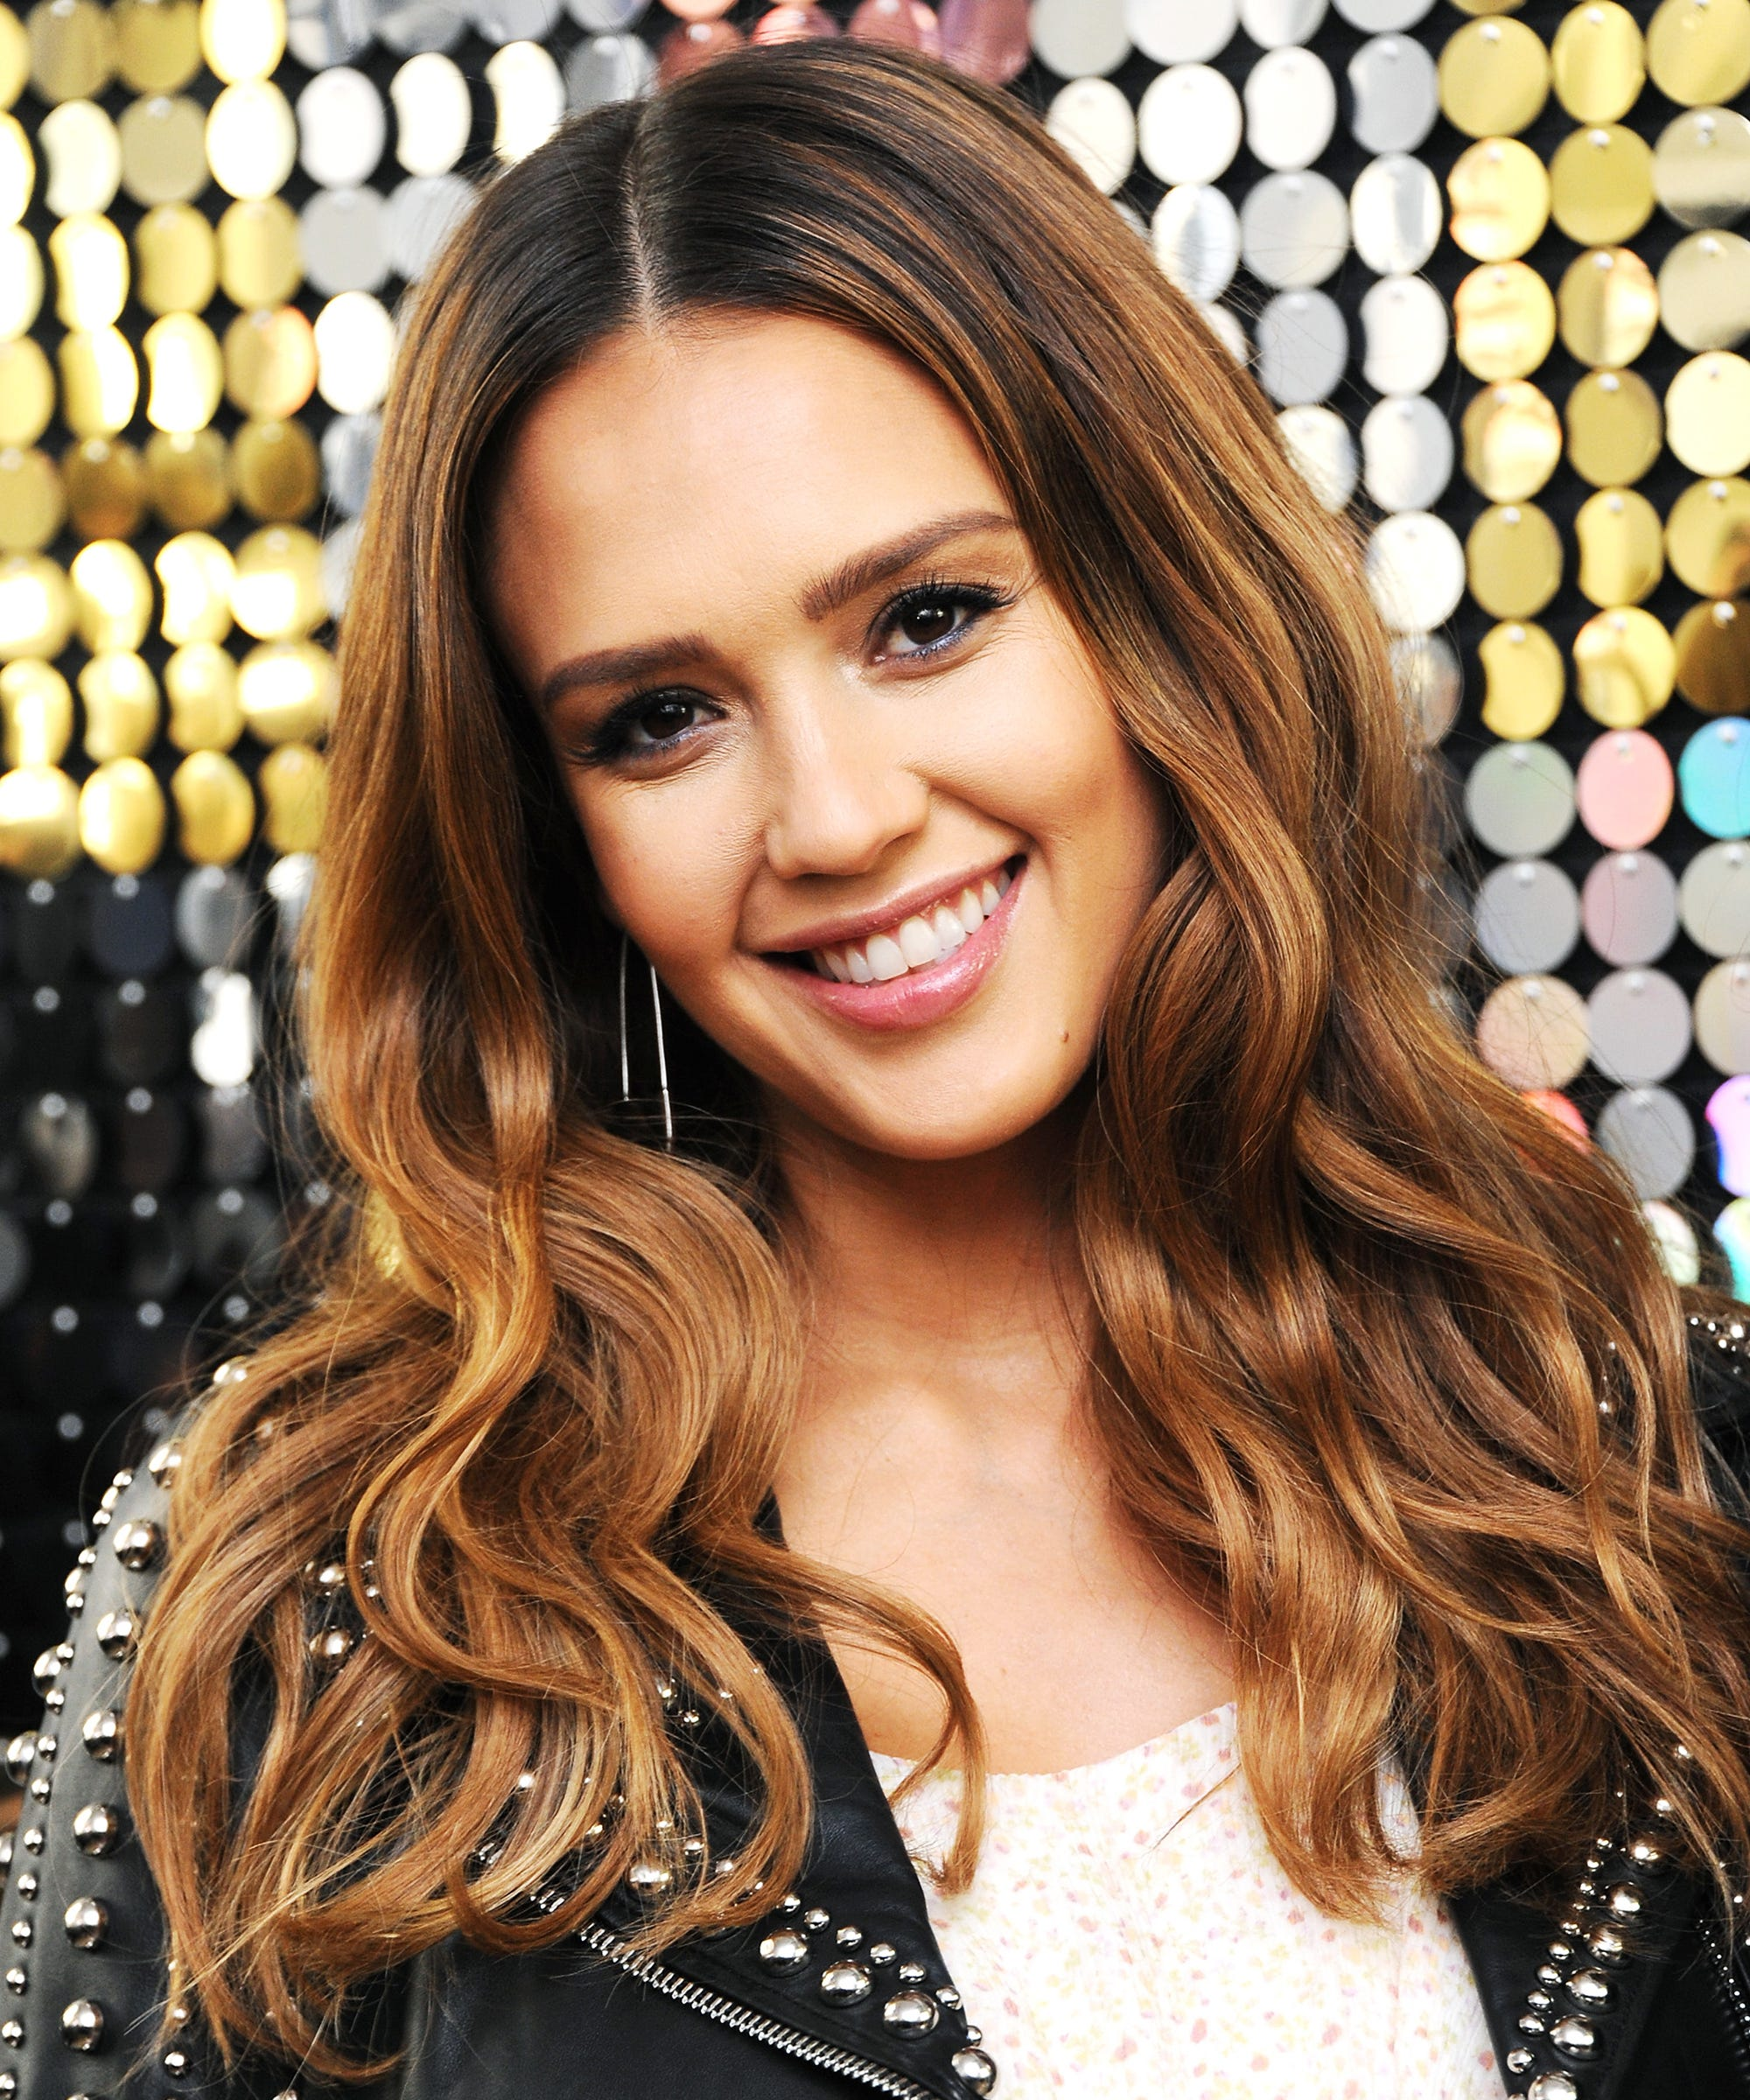 jessica alba chops off her pregnancy hair on instagram